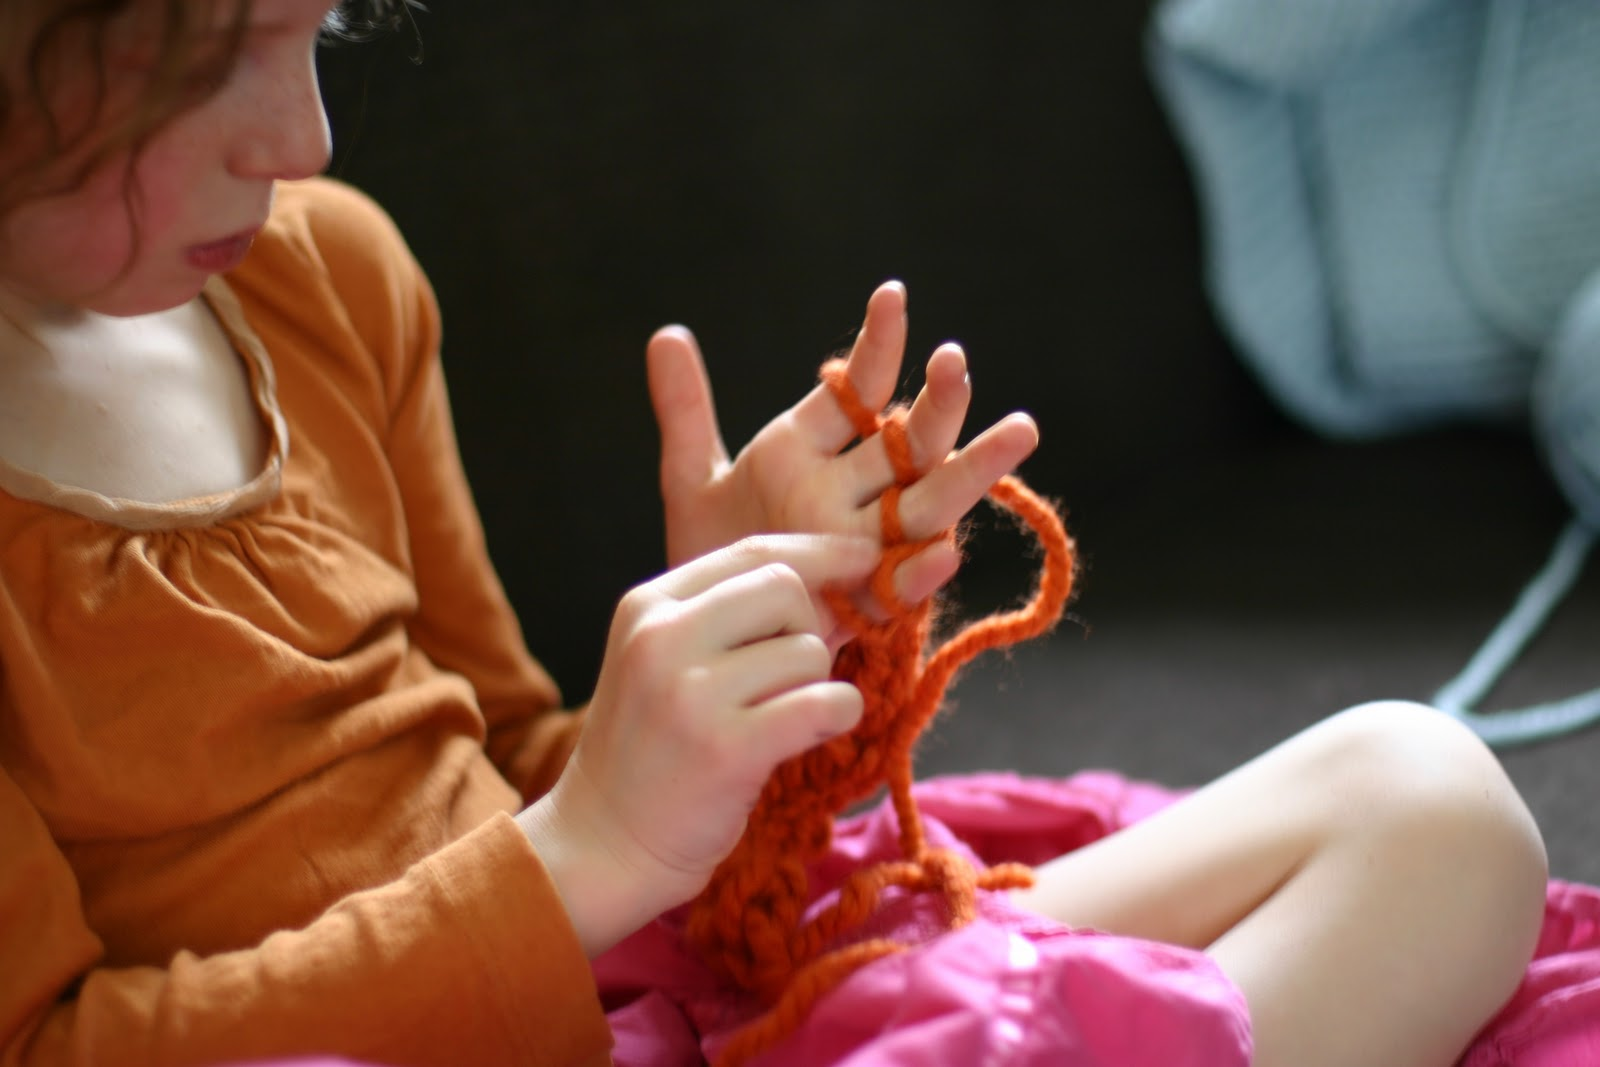 Knitting With Hands Instructions : Finger knitting how to flax twine